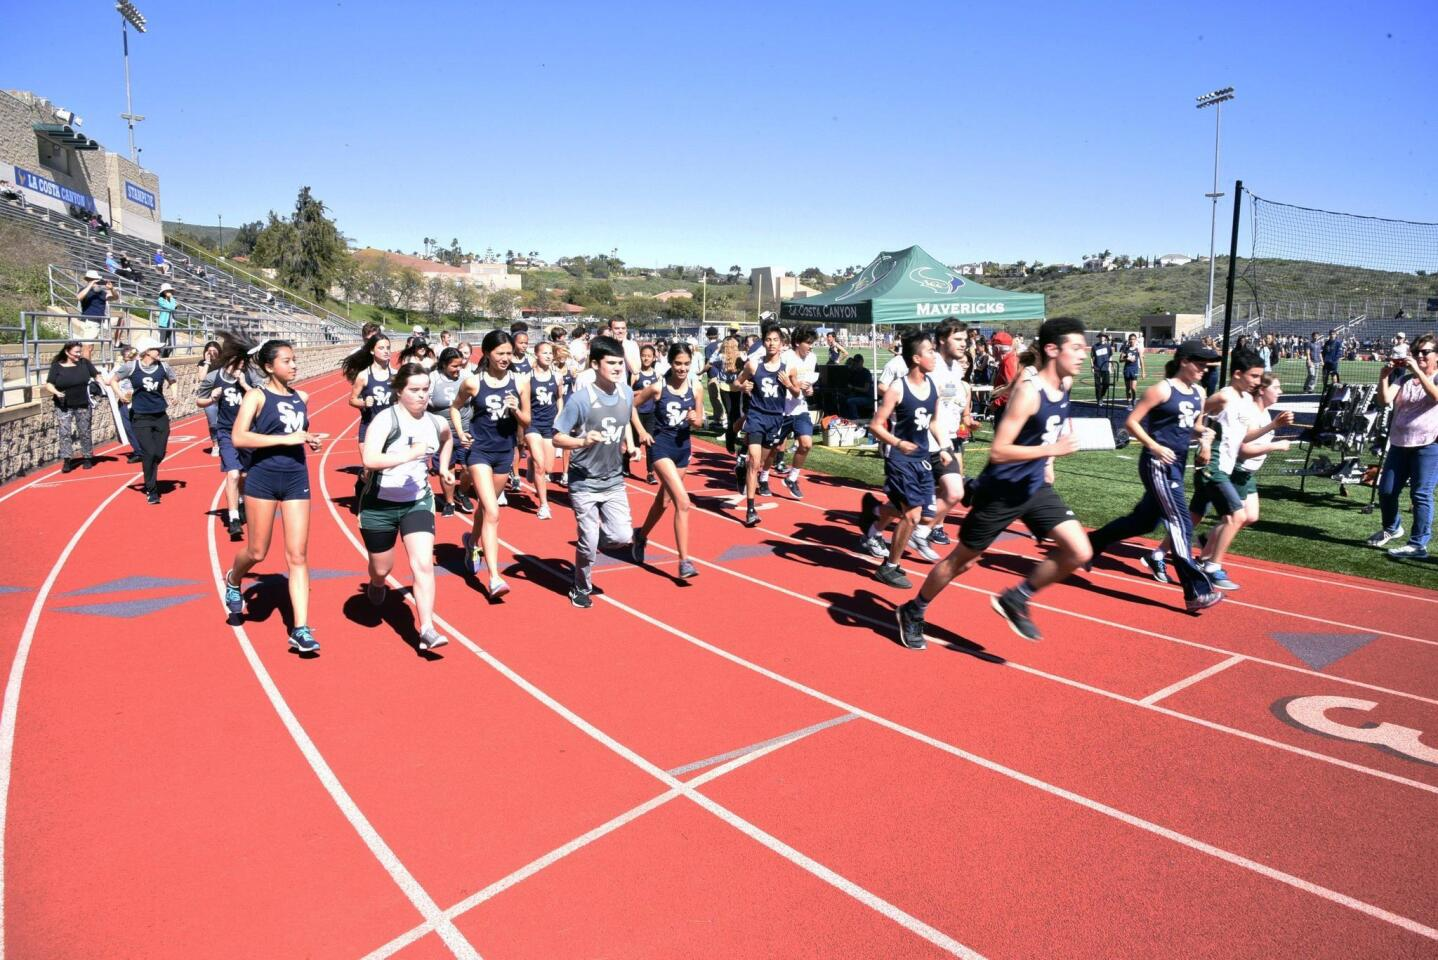 Mile runners at the start of the race